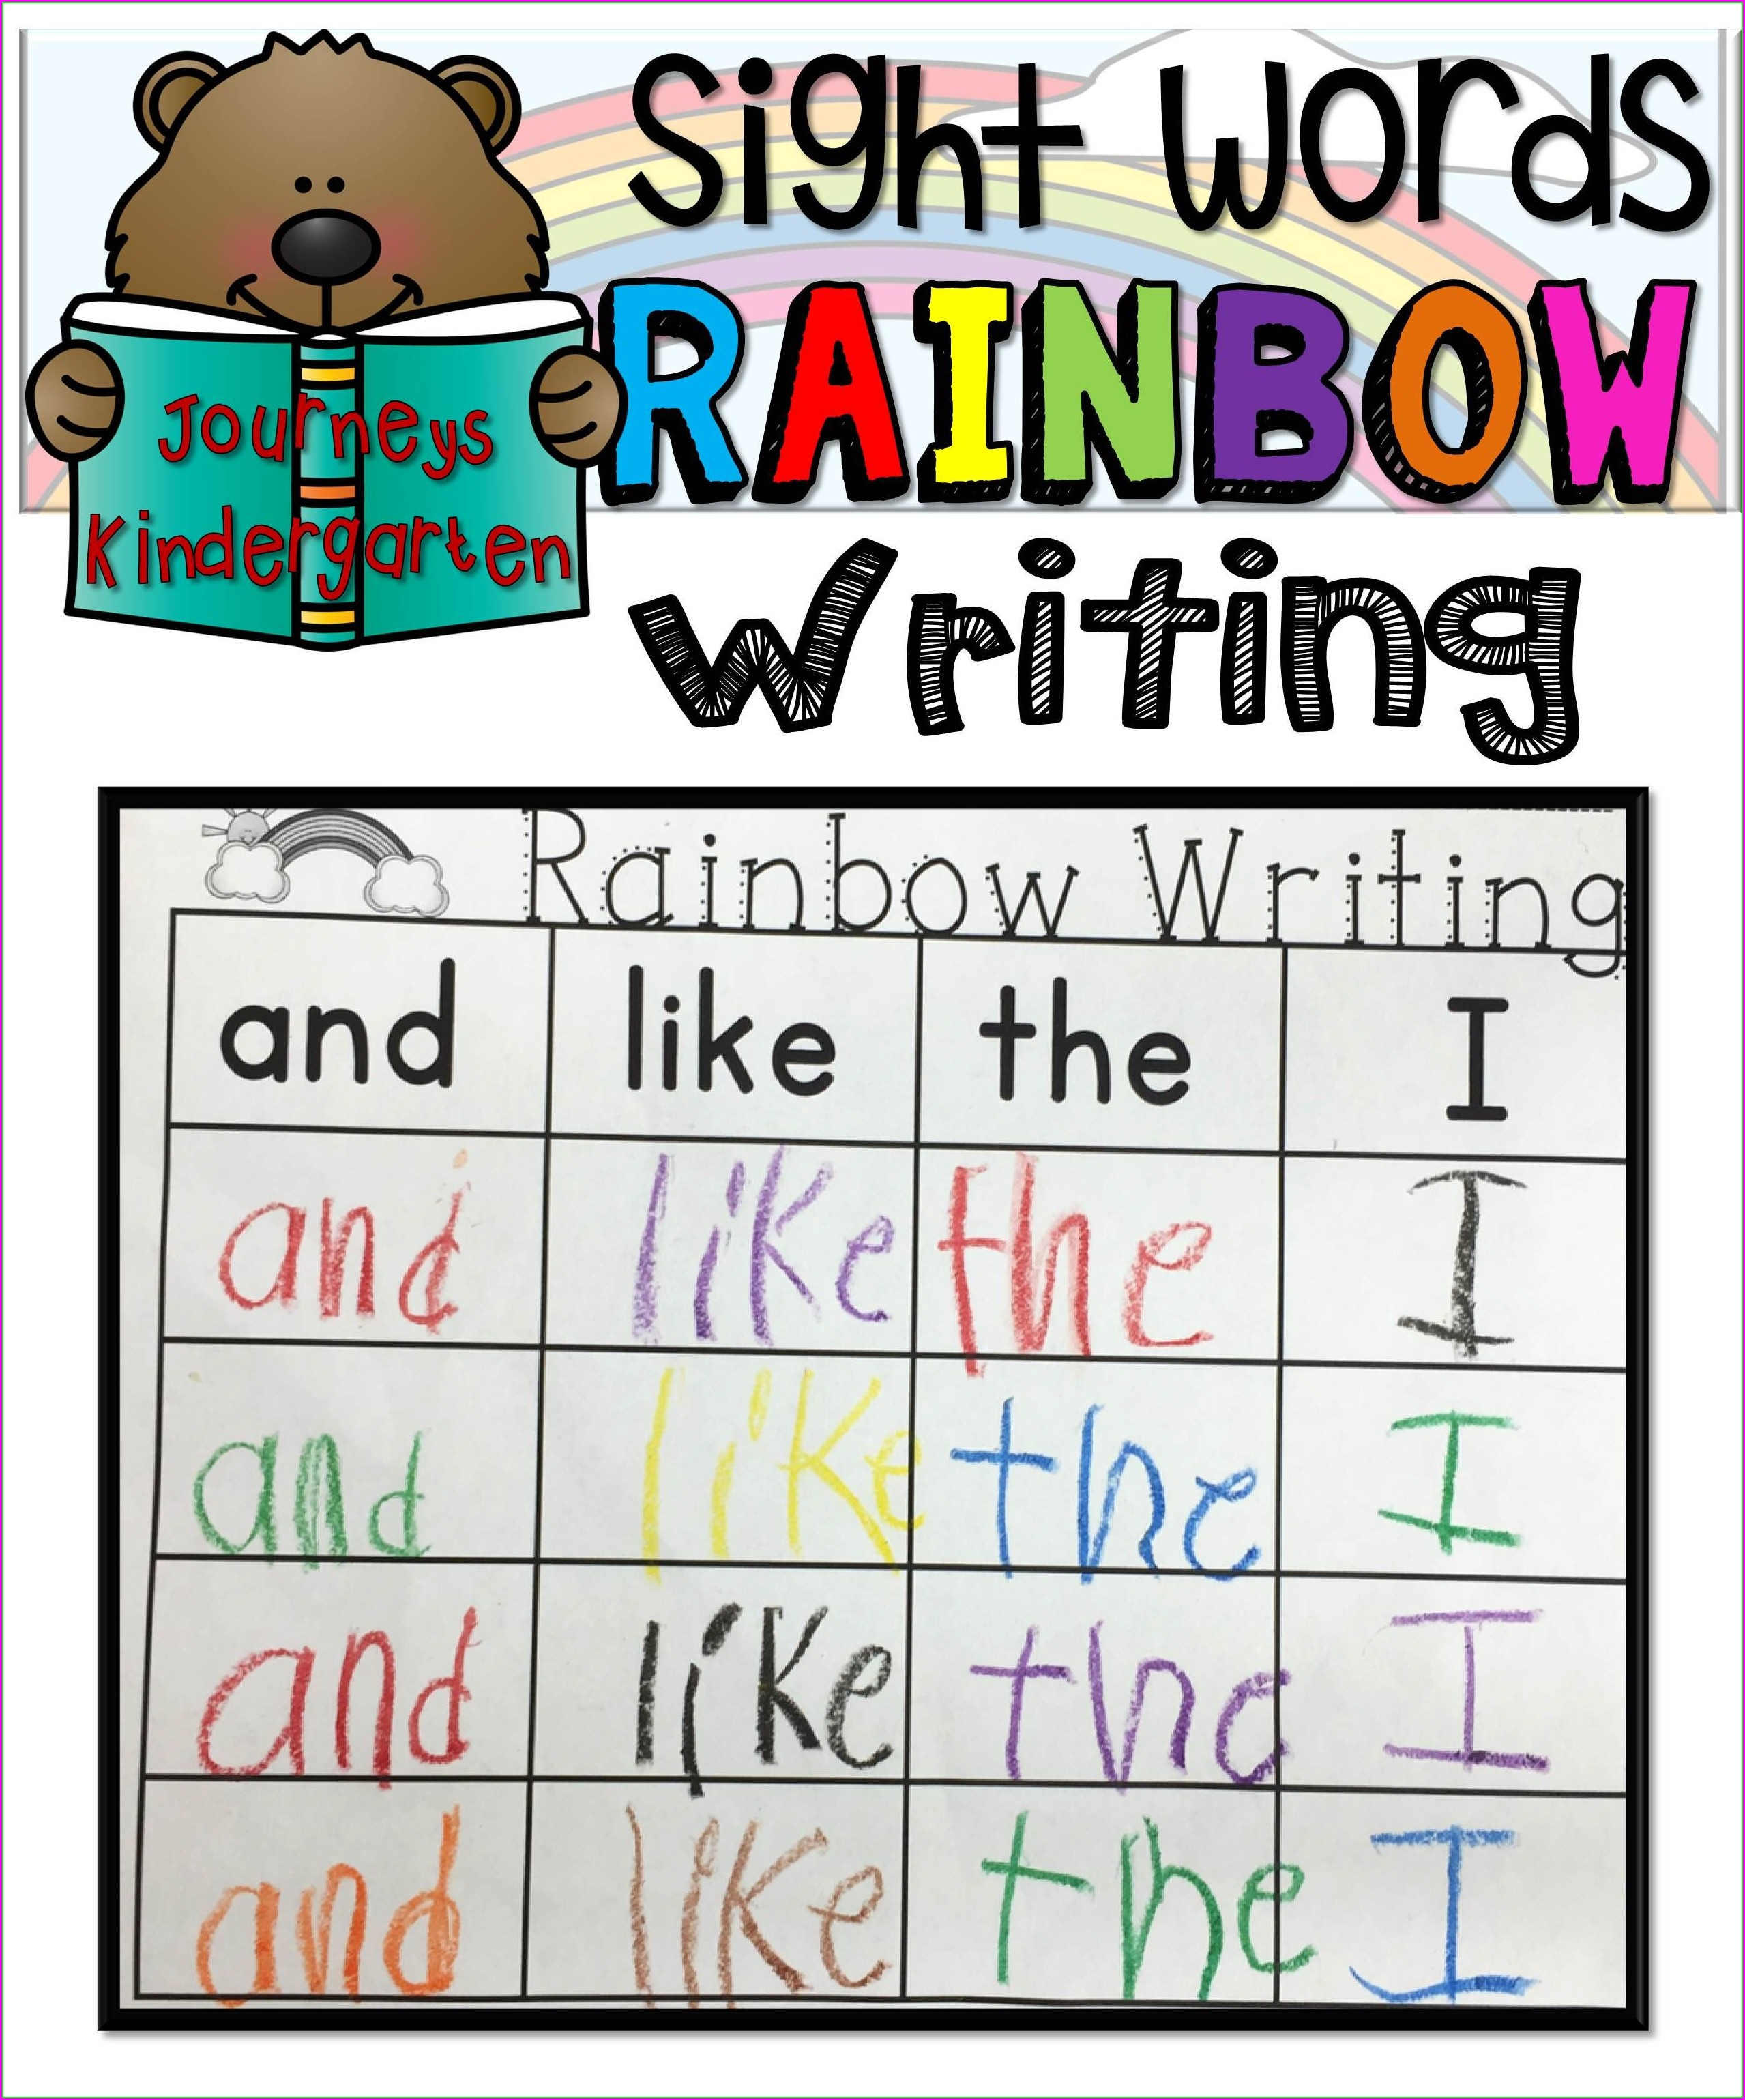 Rainbow Writing Sight Words Worksheets